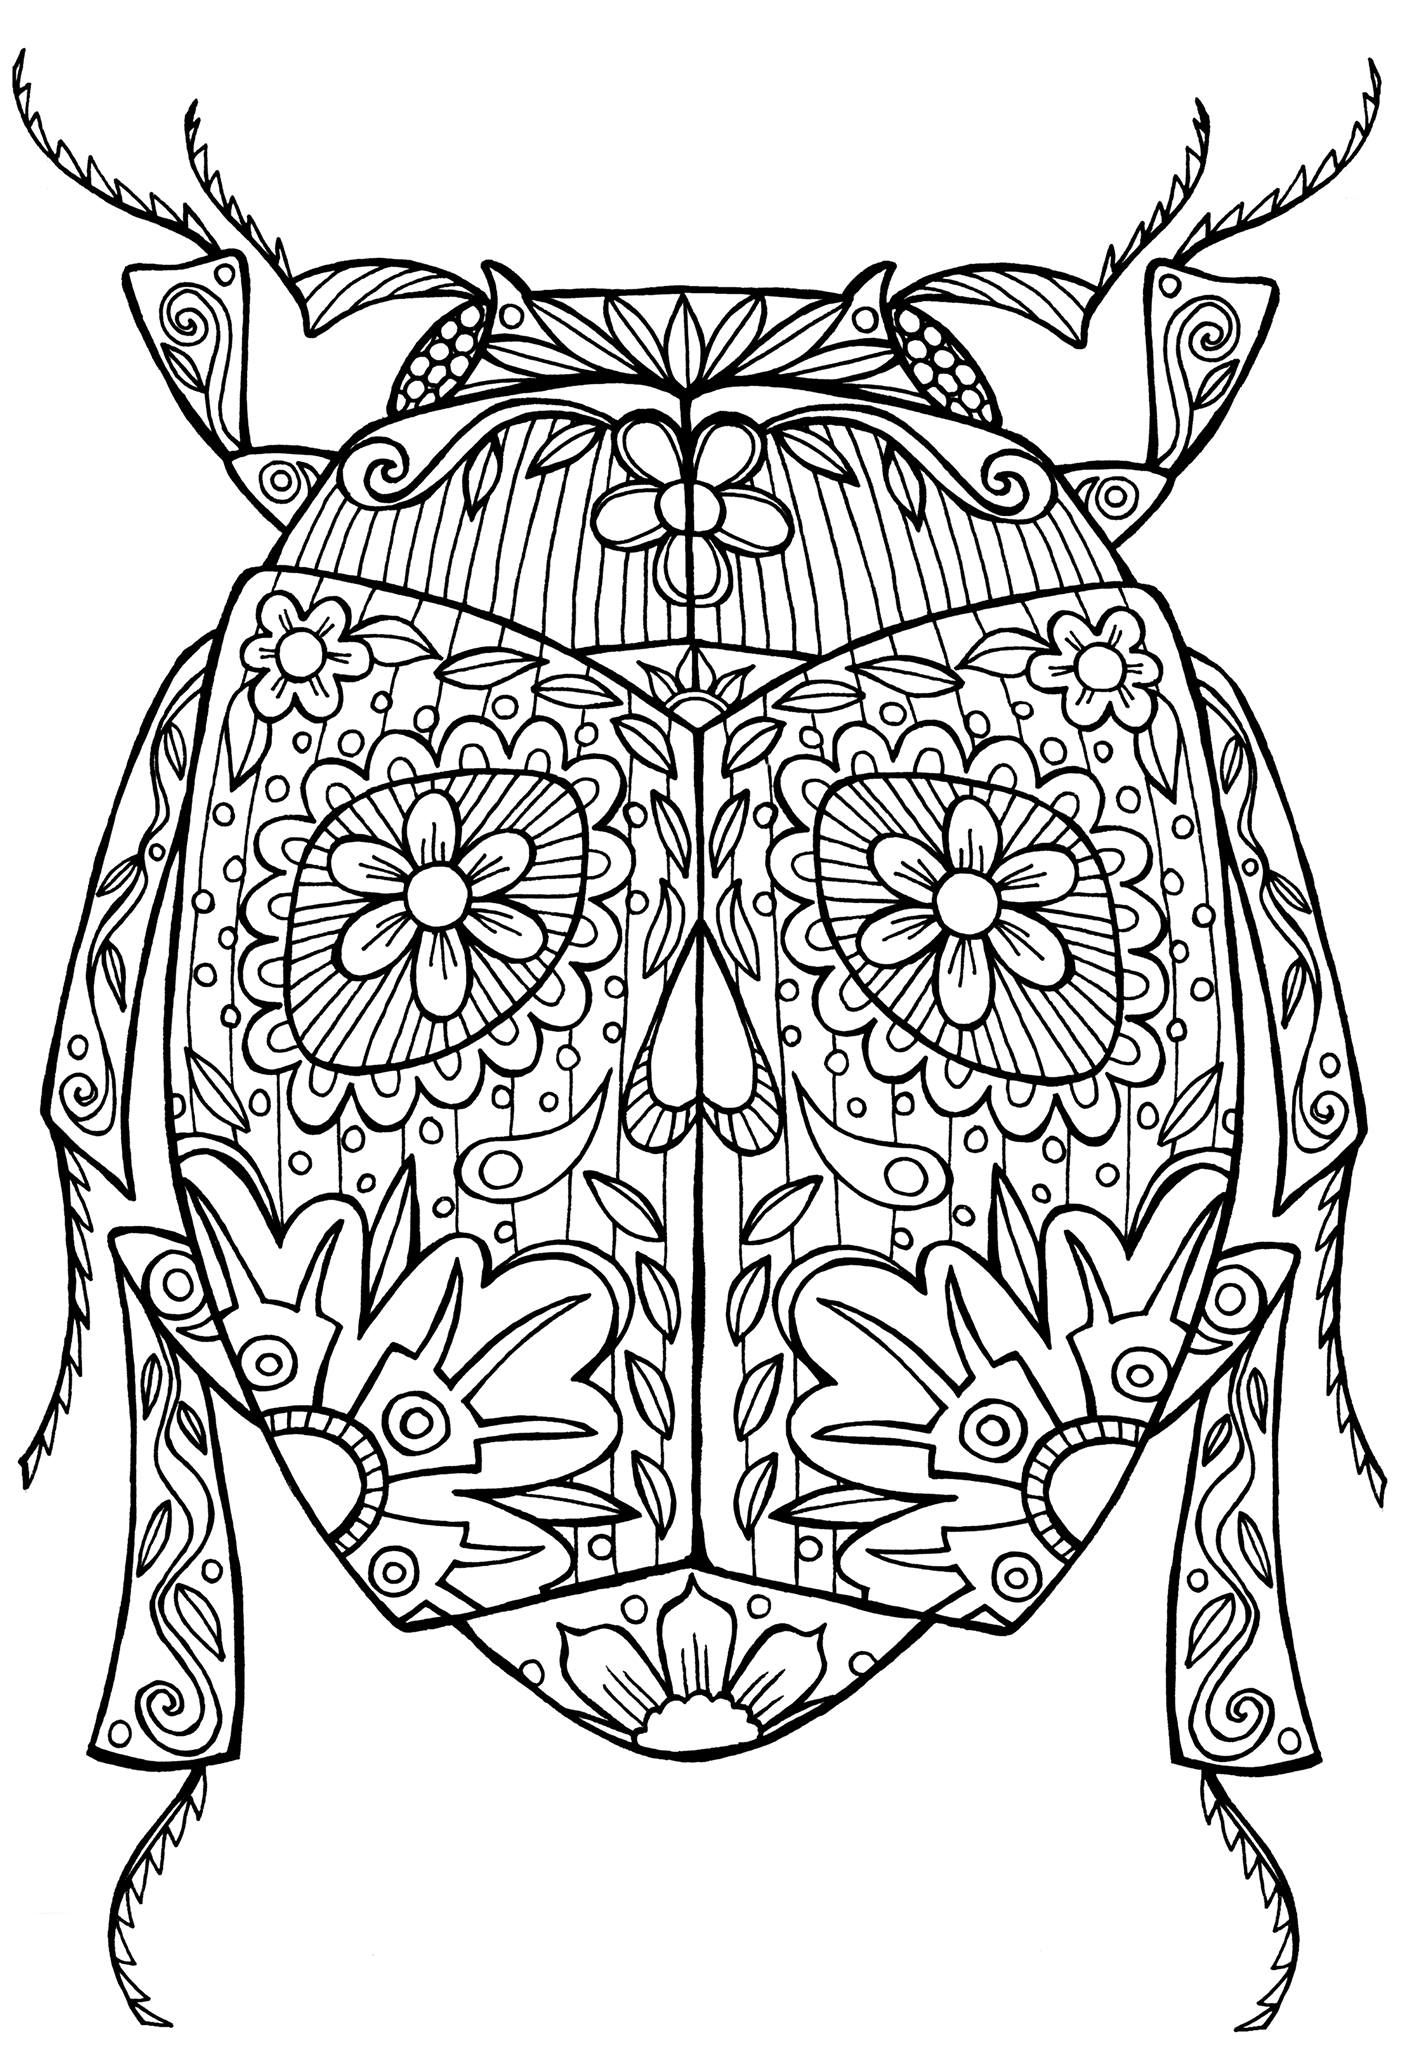 Beetle Bug Abstract Doodle Zentangle Coloring pages colouring adult ...